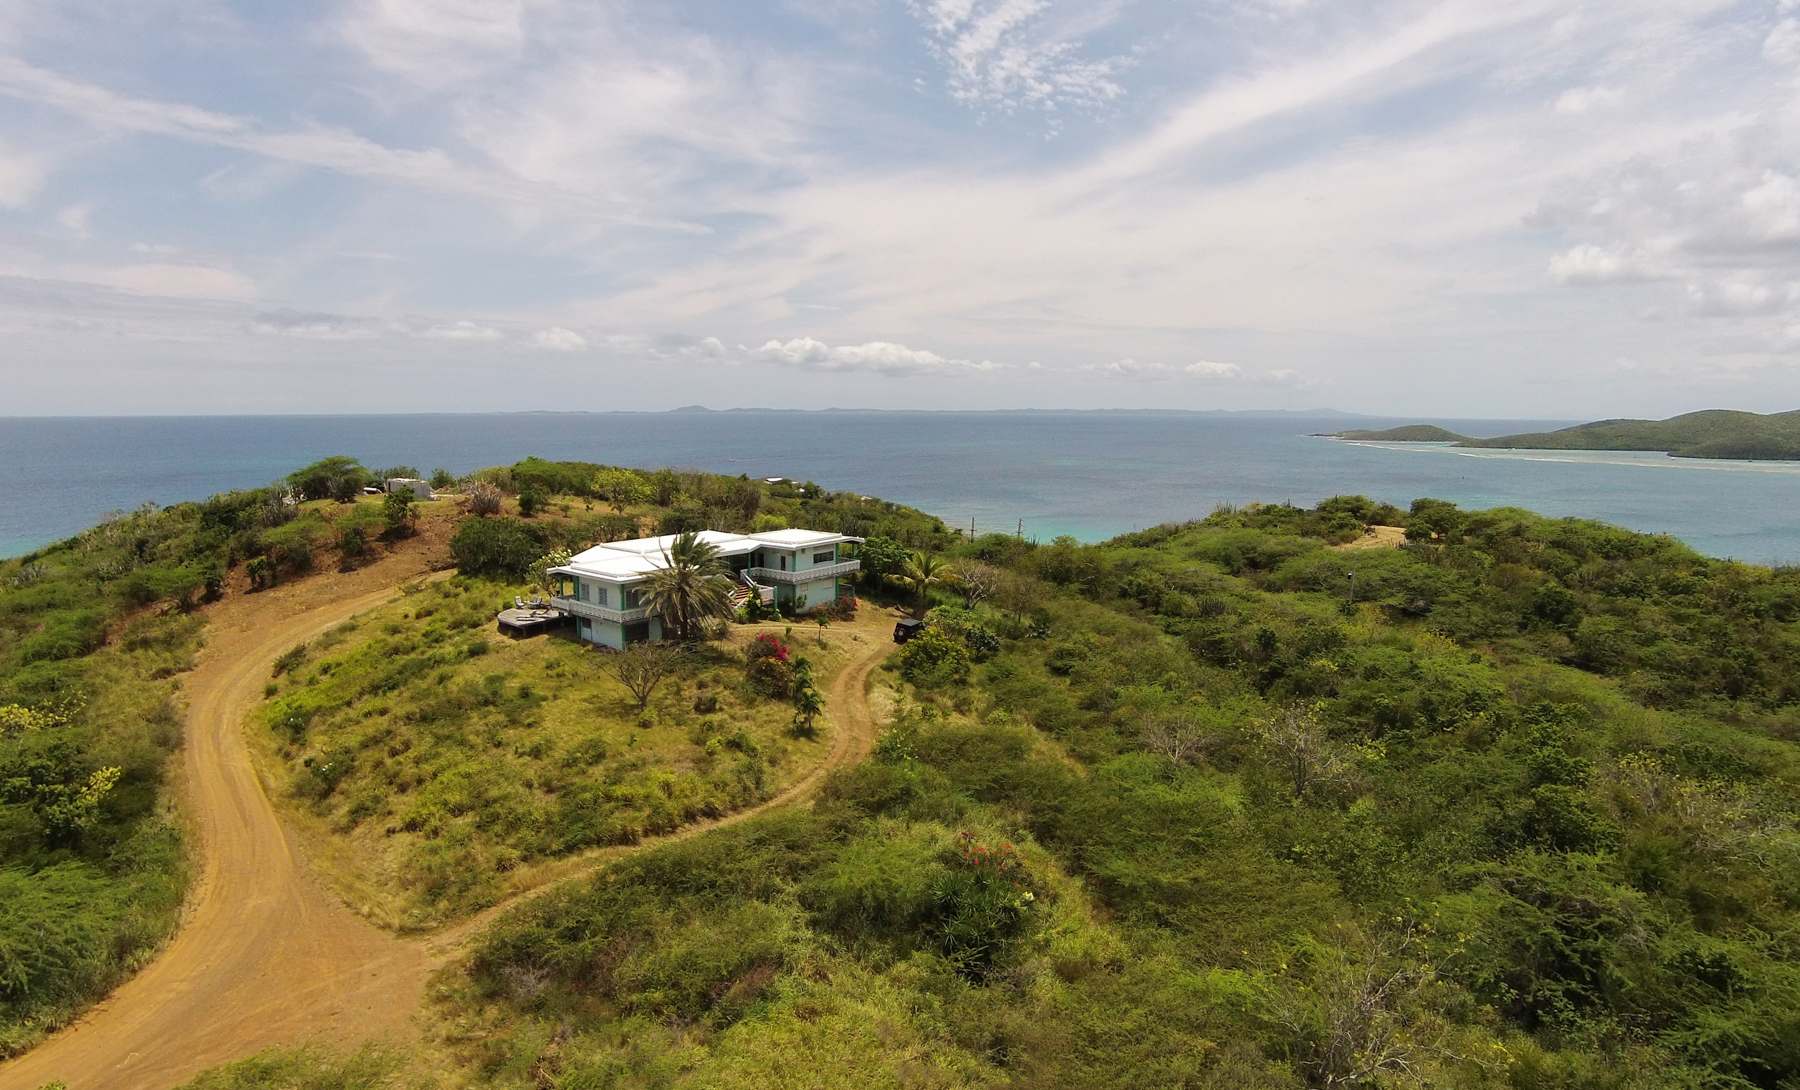 Single Family Home for Sale at Inspiring Oceanview Privacy on Culebra Island 6 Punta Del Viento Estates Culebra, Puerto Rico 00775 Puerto Rico